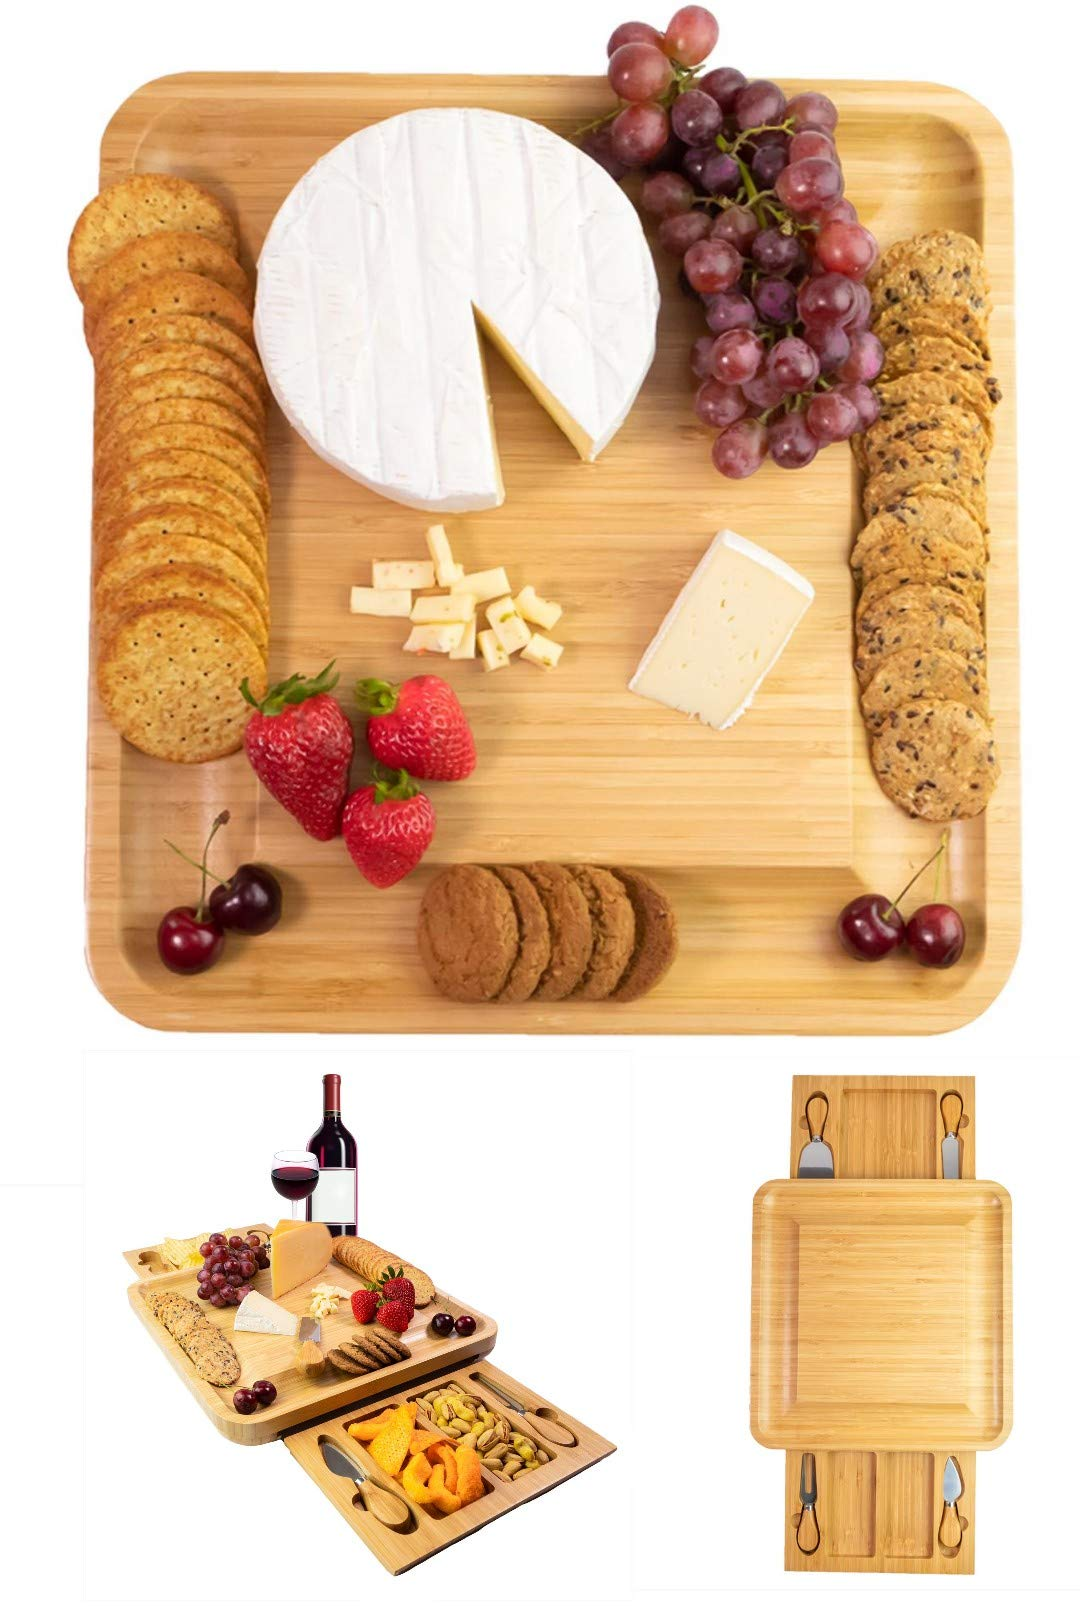 Premium Cheese Board Set - Two Hidden Drawers, 4 Stainless Steel Cutlery Set, Bamboo Charcuterie Board - Large Serving Tray - Cheese Board and Knife Set - Perfect Gift For House Warming - Christmas by Fancy Kitch Inc.